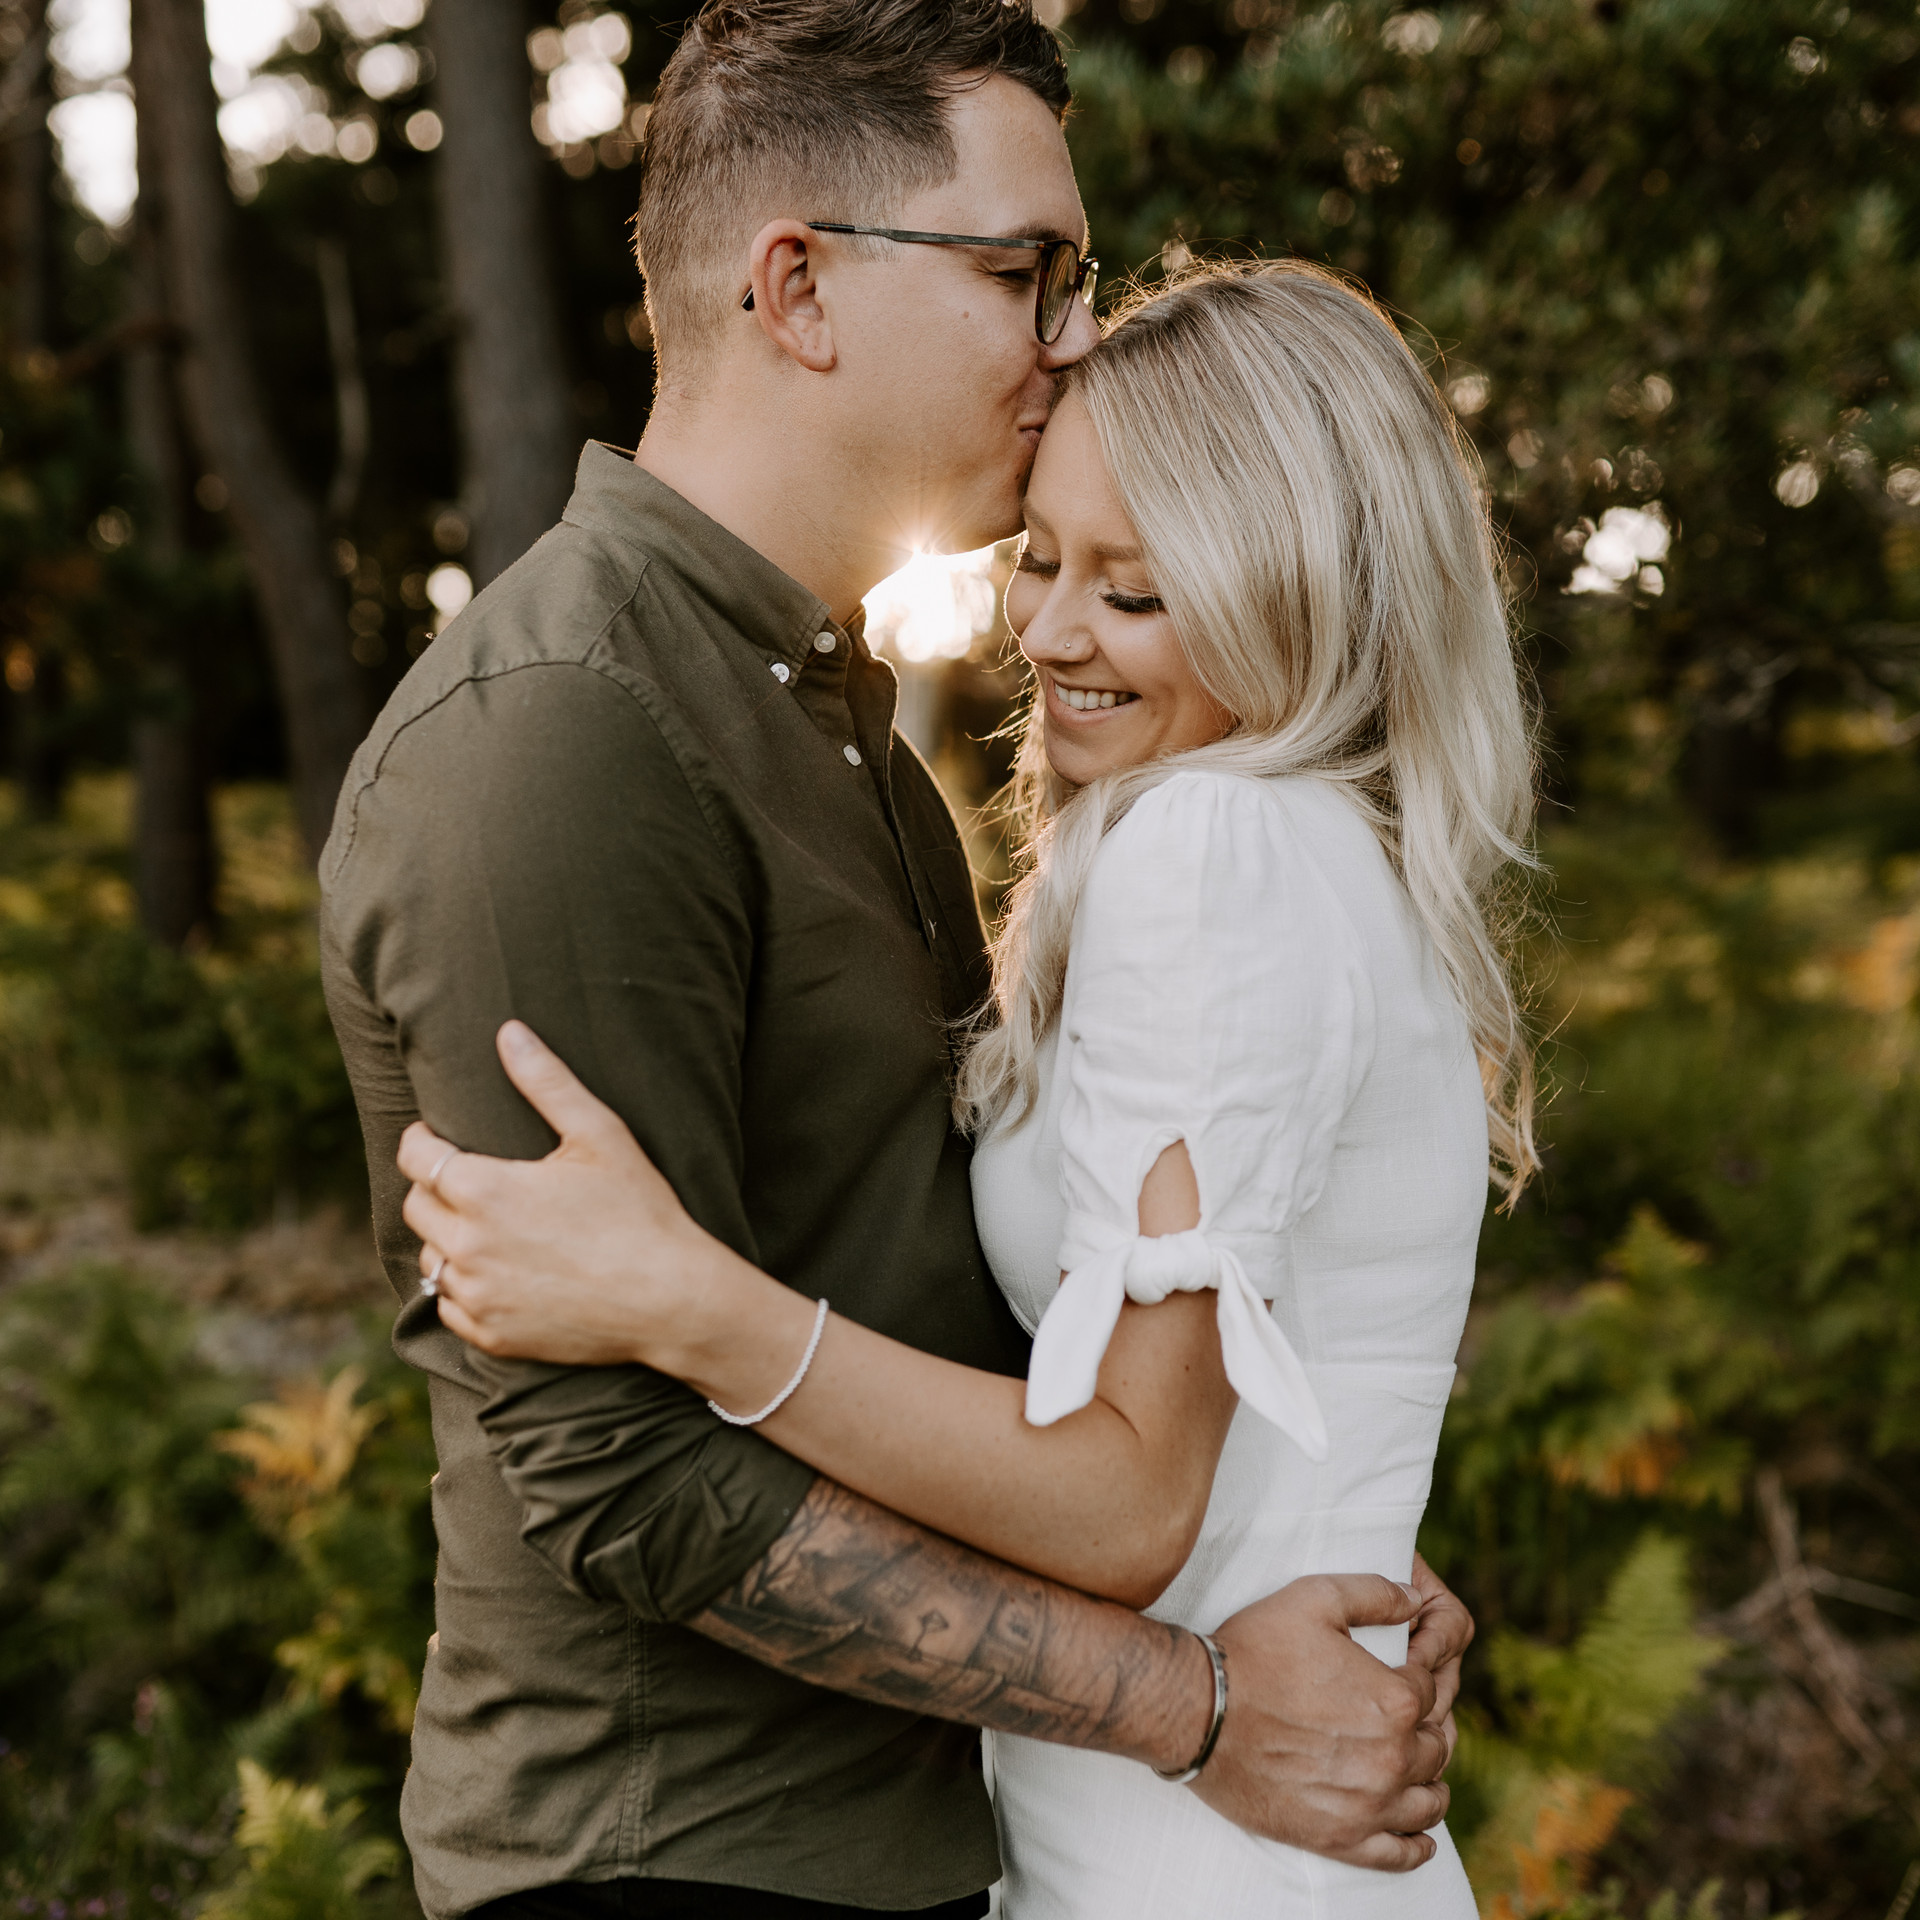 Sian & Mike | Couple Session-047.jpg